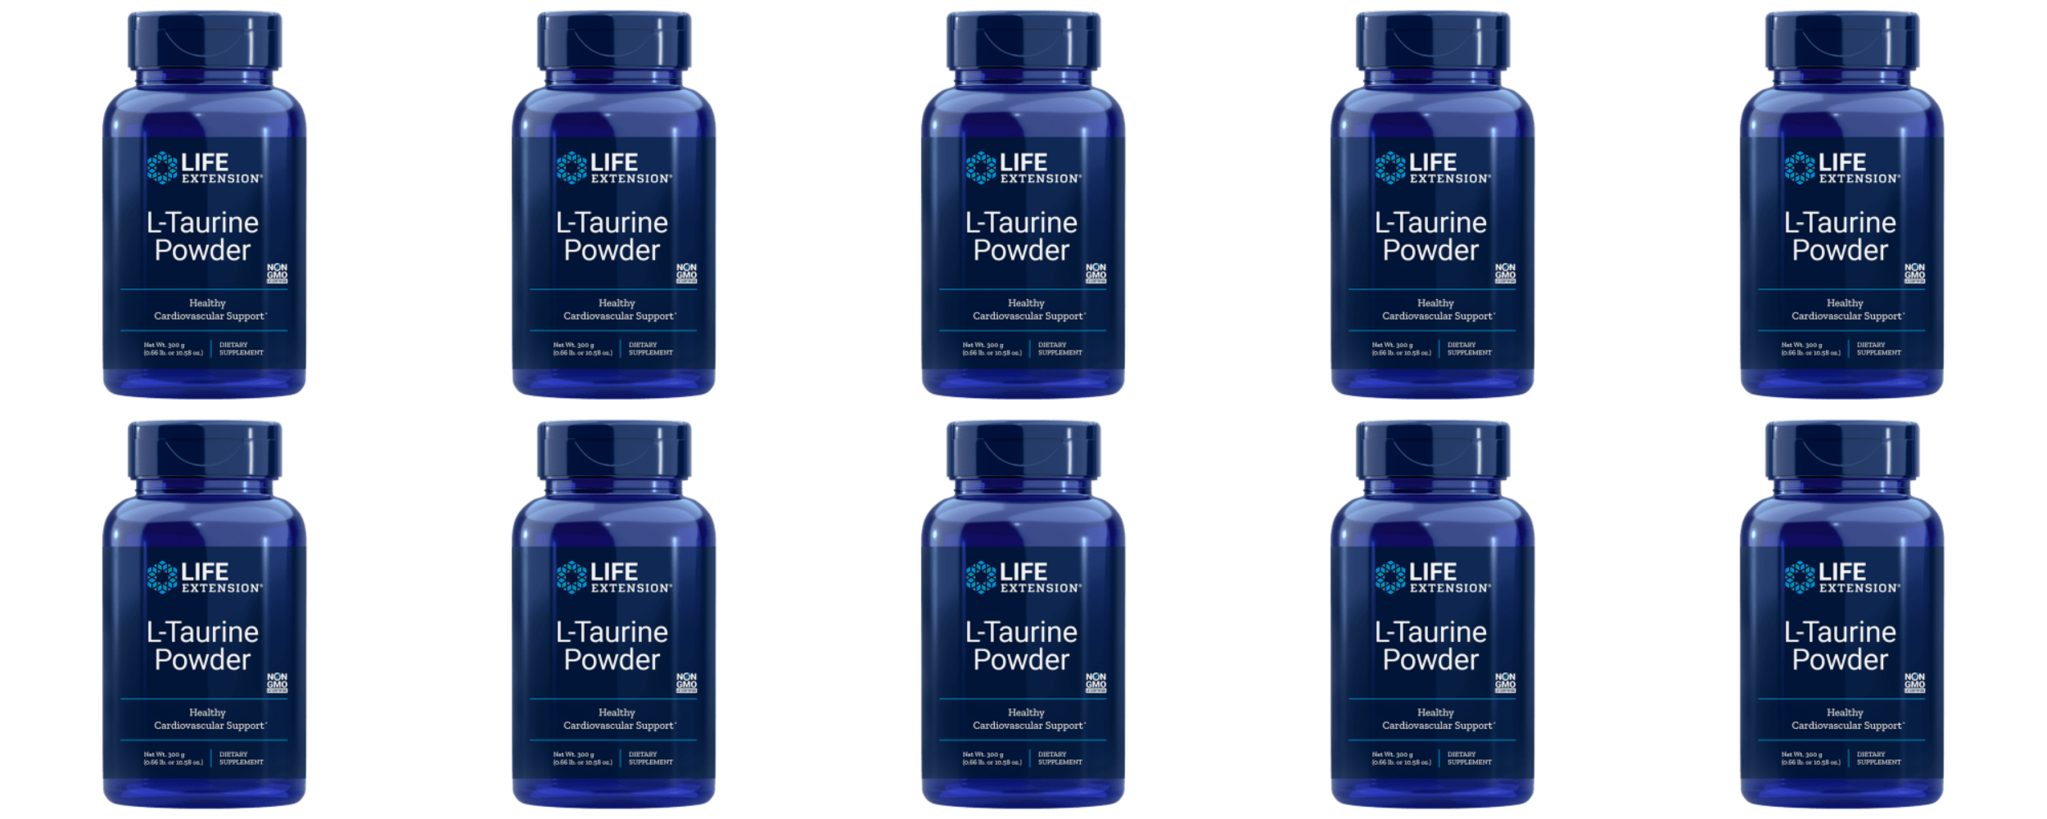 Life Extension L-Taurine Powder, 300 Grams, 10-pack